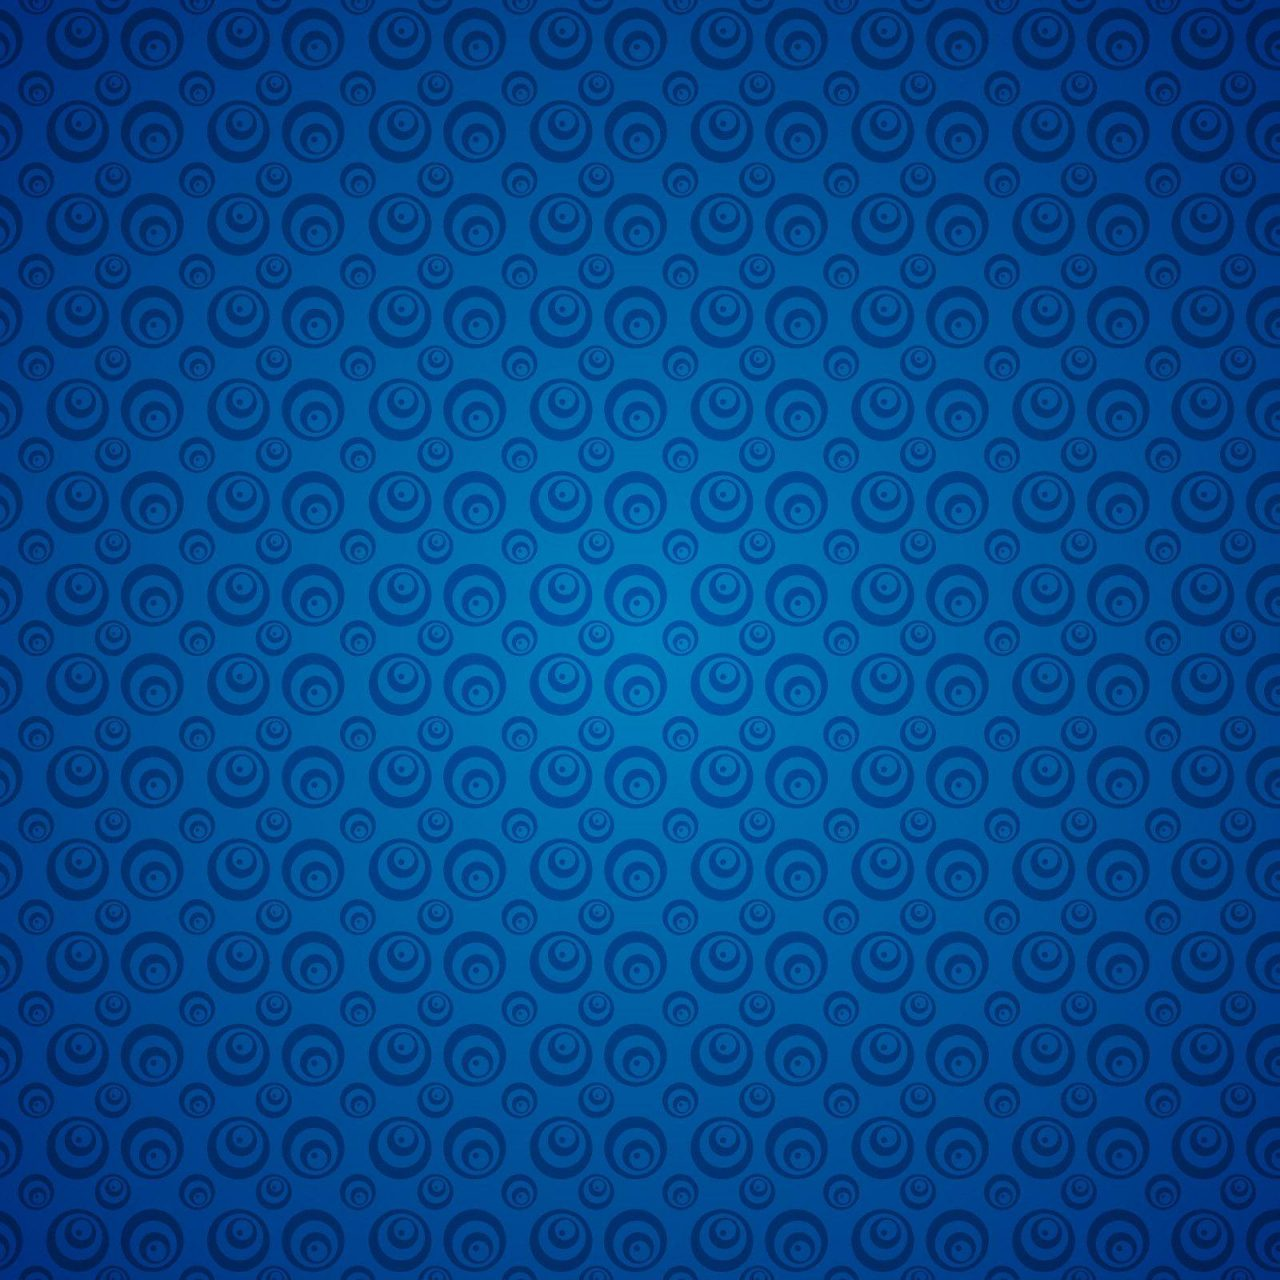 Islamic Wallpaper Hd 3d Blue Background Hd Wallpapers Hd Backgrounds Tumblr